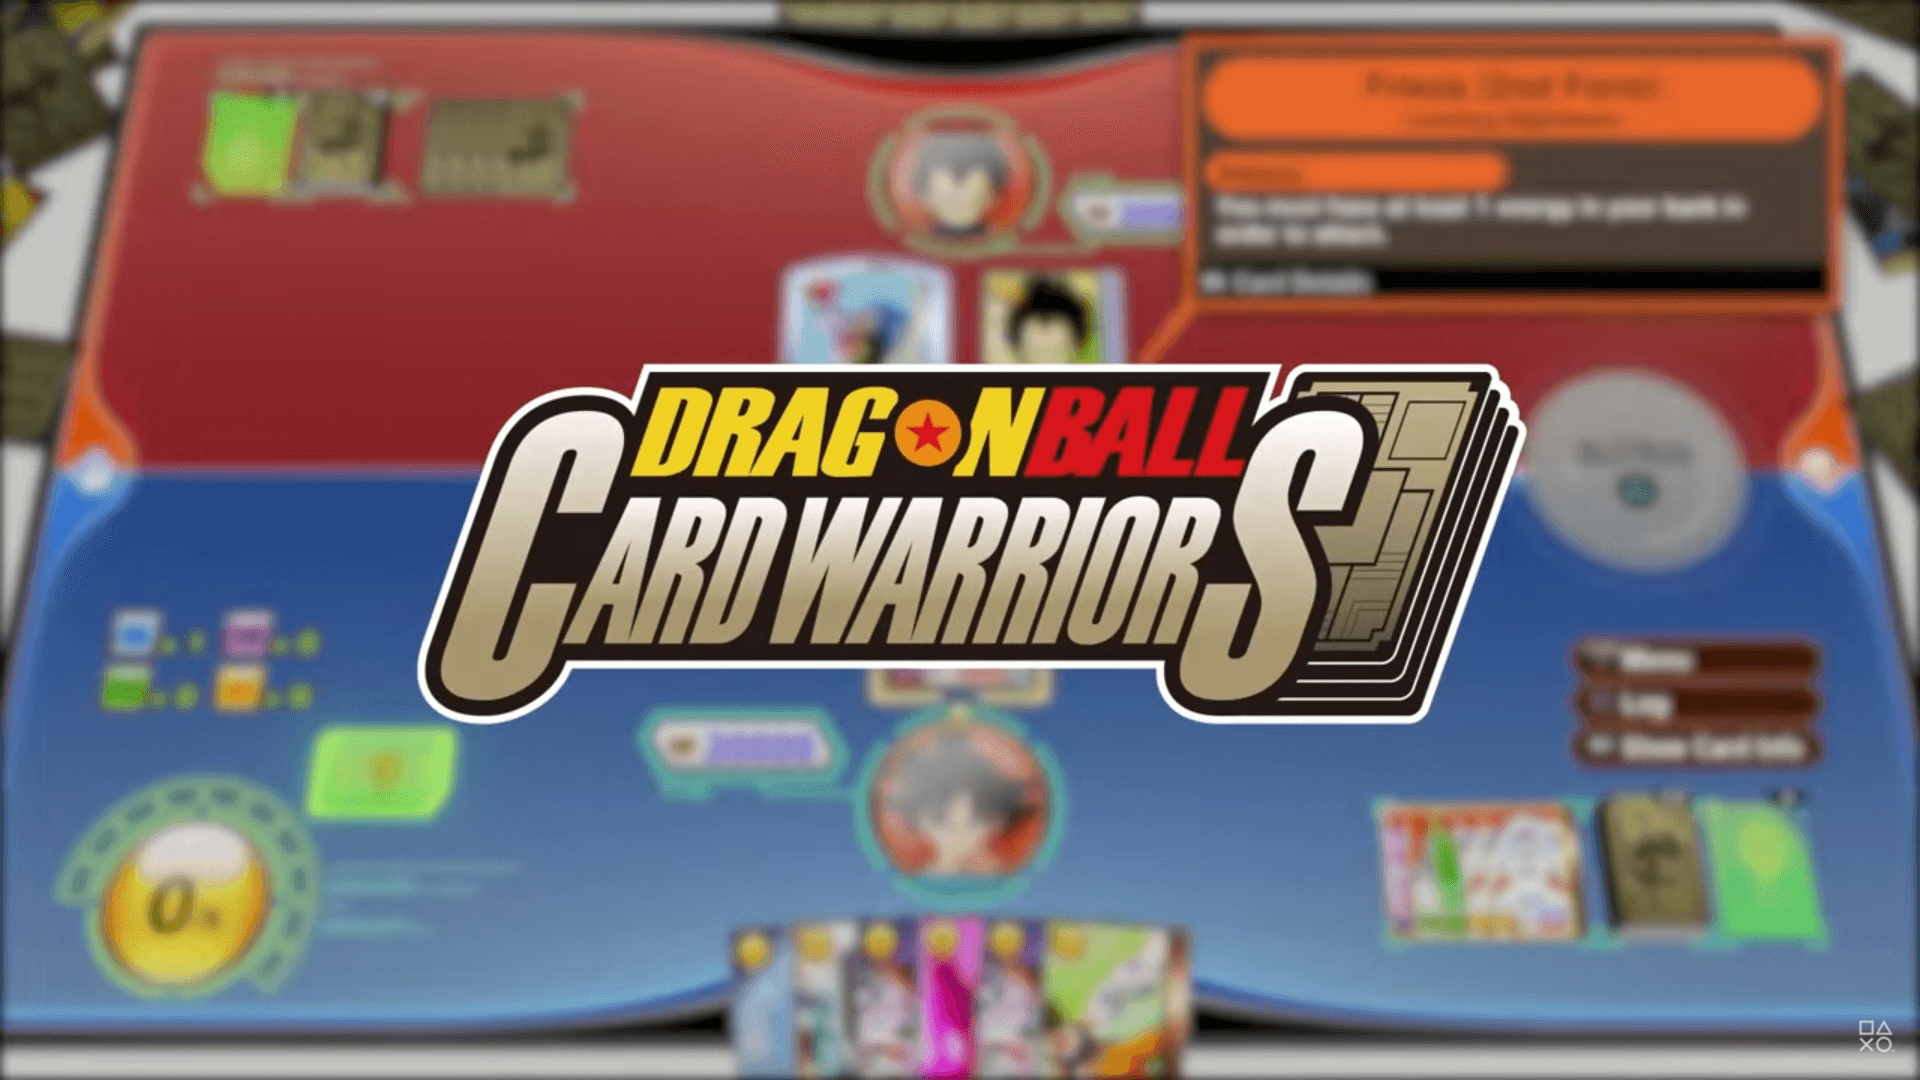 DragonBall Z: Kakarot is Adding a Free Card Game Update